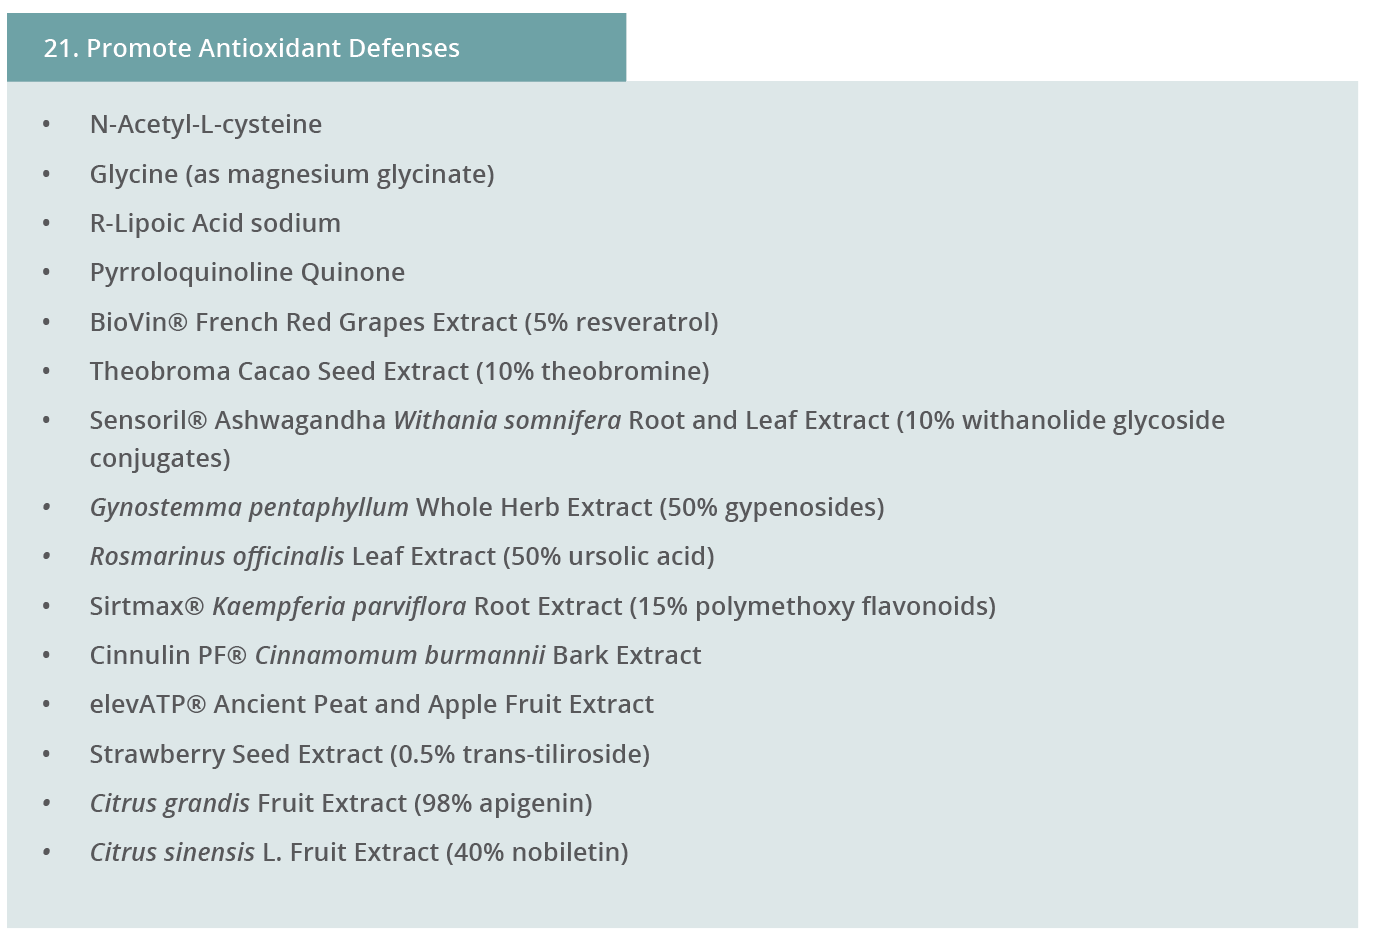 Image 21. Promote Antioxidant Defenses